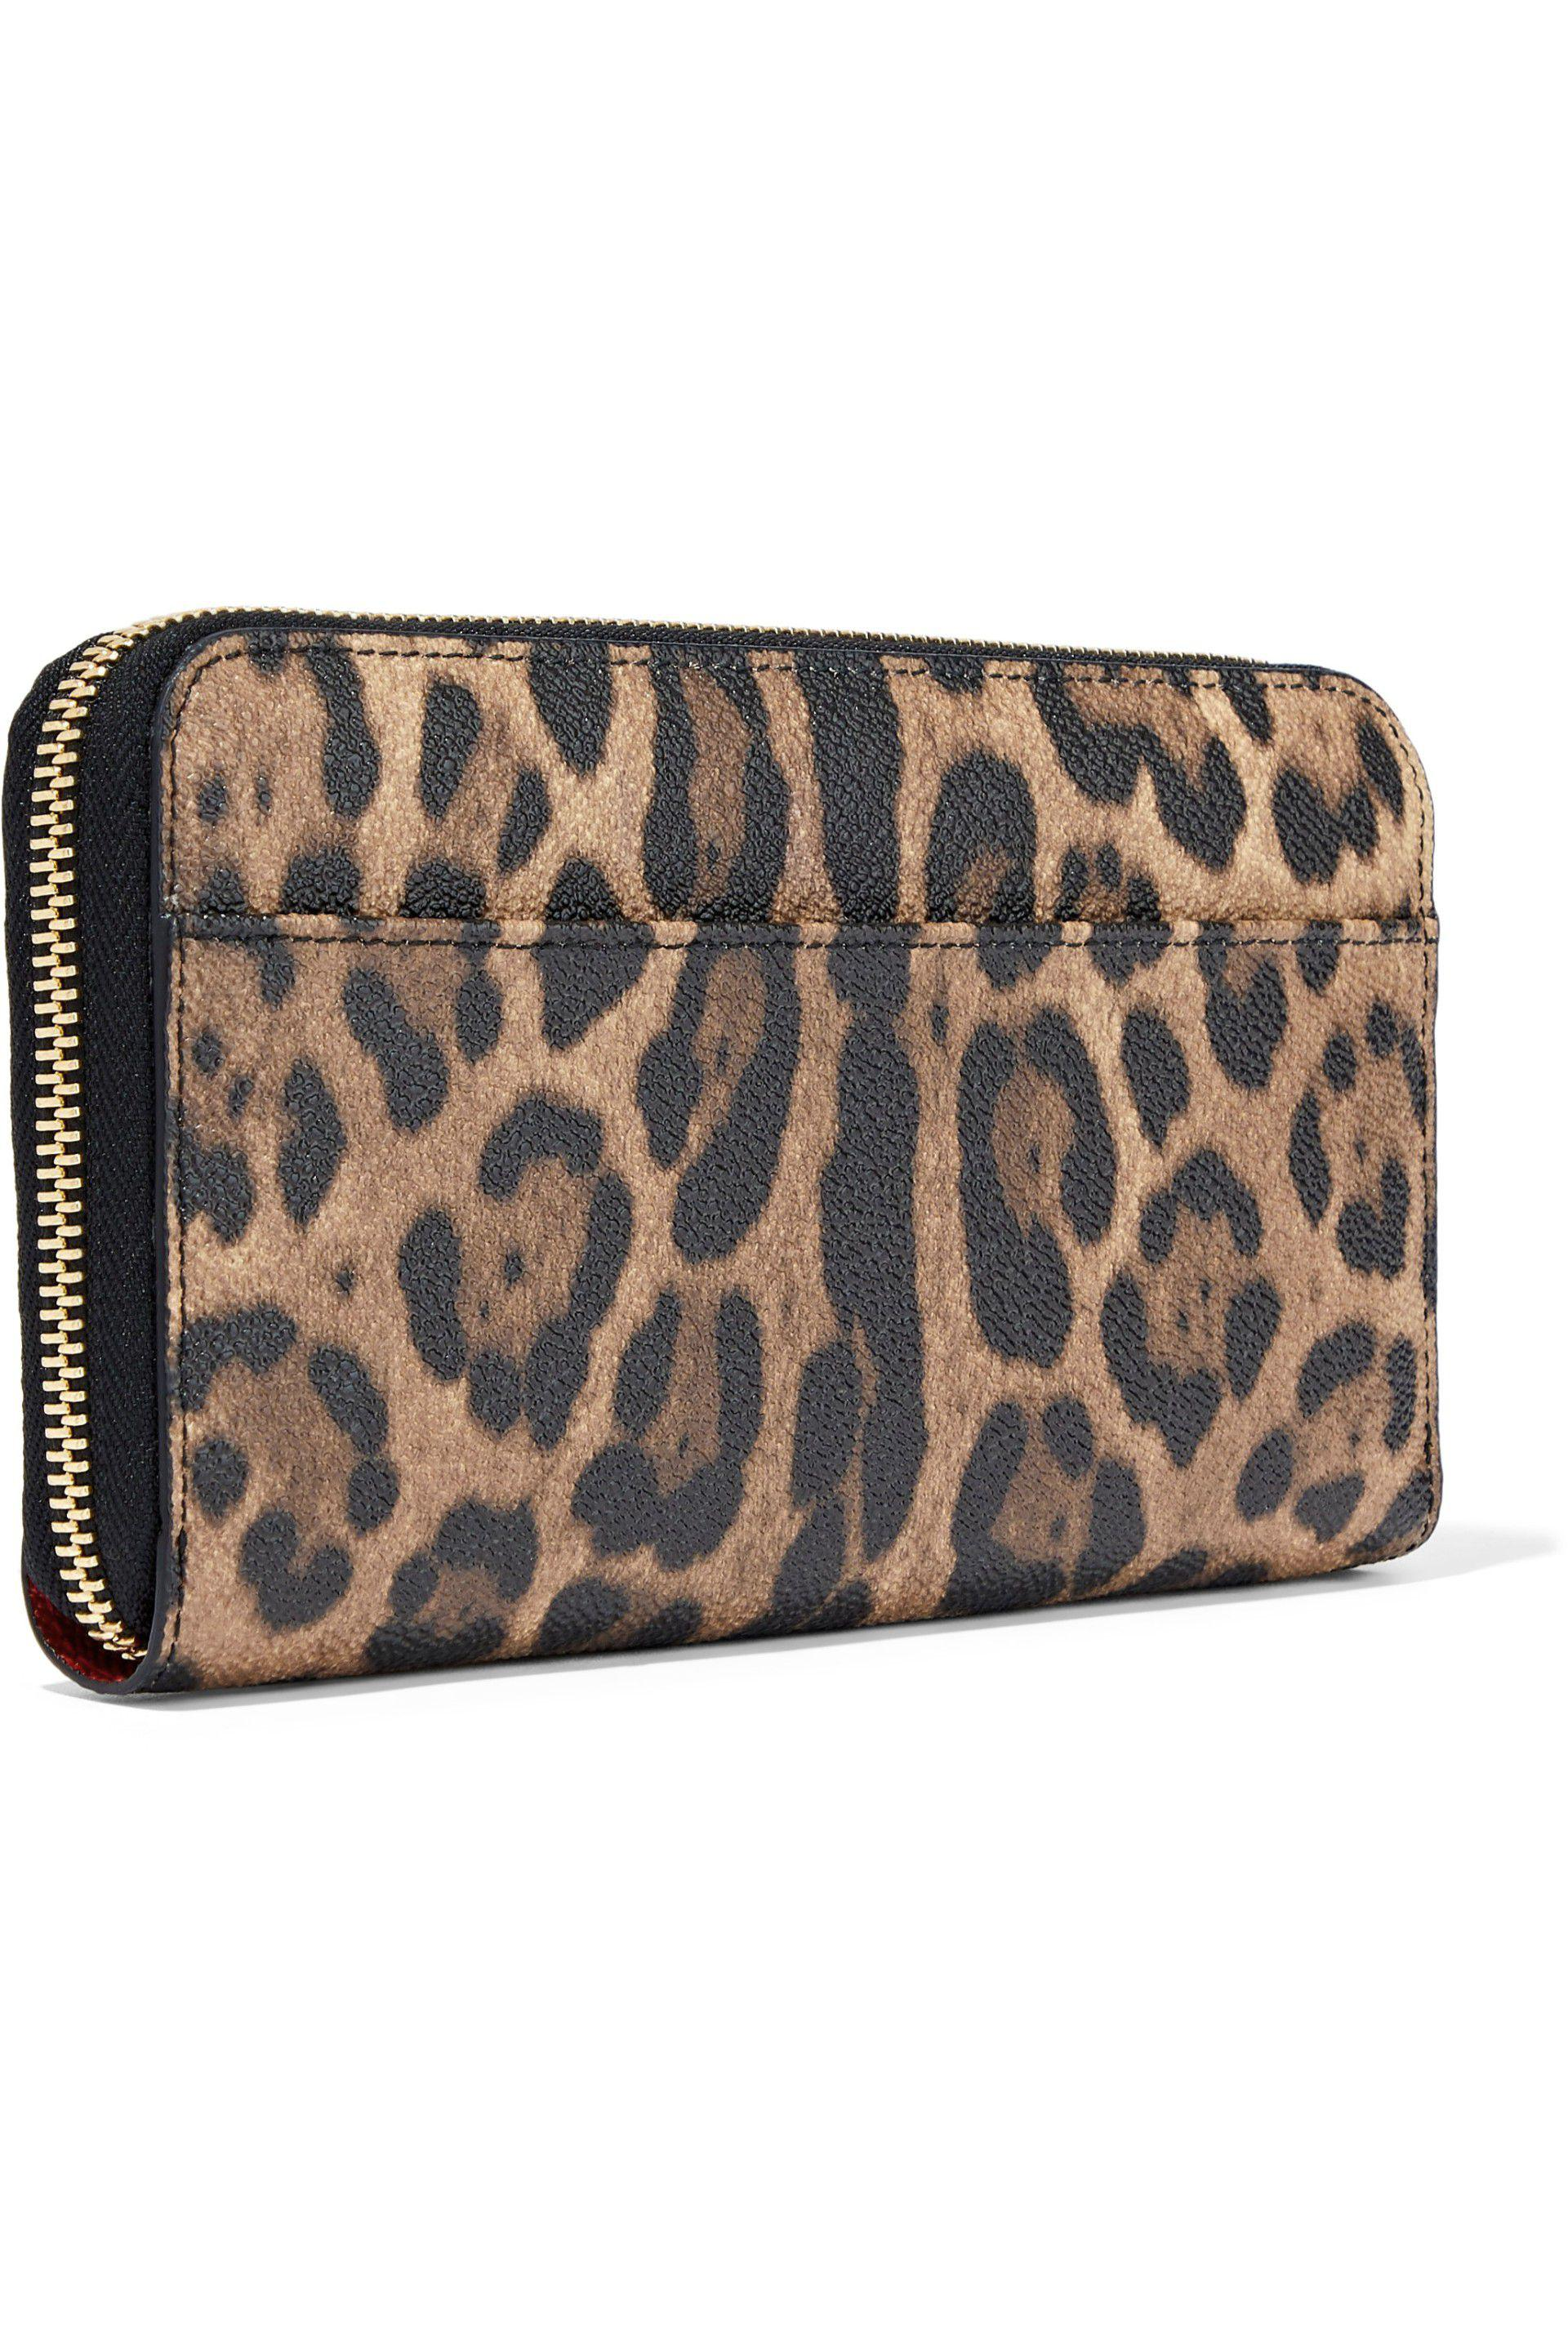 0072470550 Dolce & Gabbana Leopard-print Textured-leather Continental Wallet - Lyst